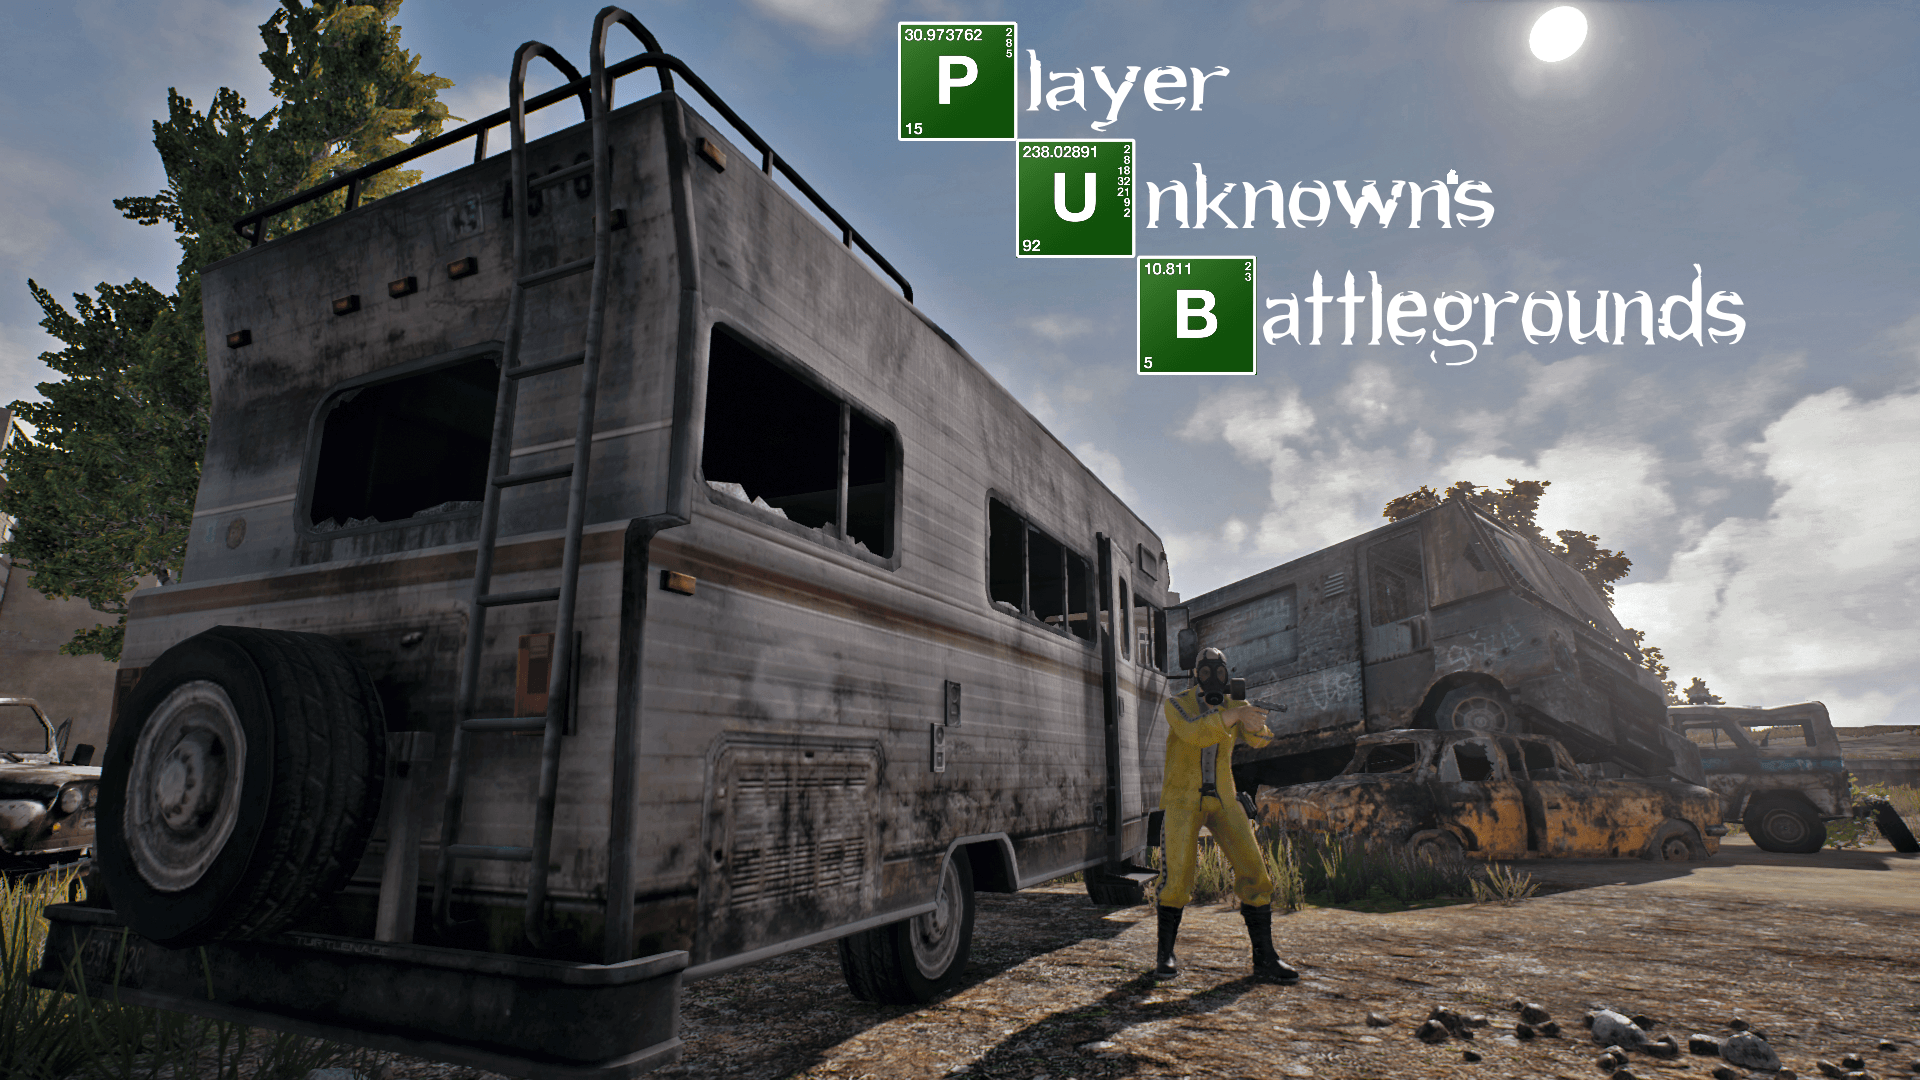 Made a PUBG Wallpapers of Breaking Bad 1920 x 1080 : PUBATTLEGROUNDS